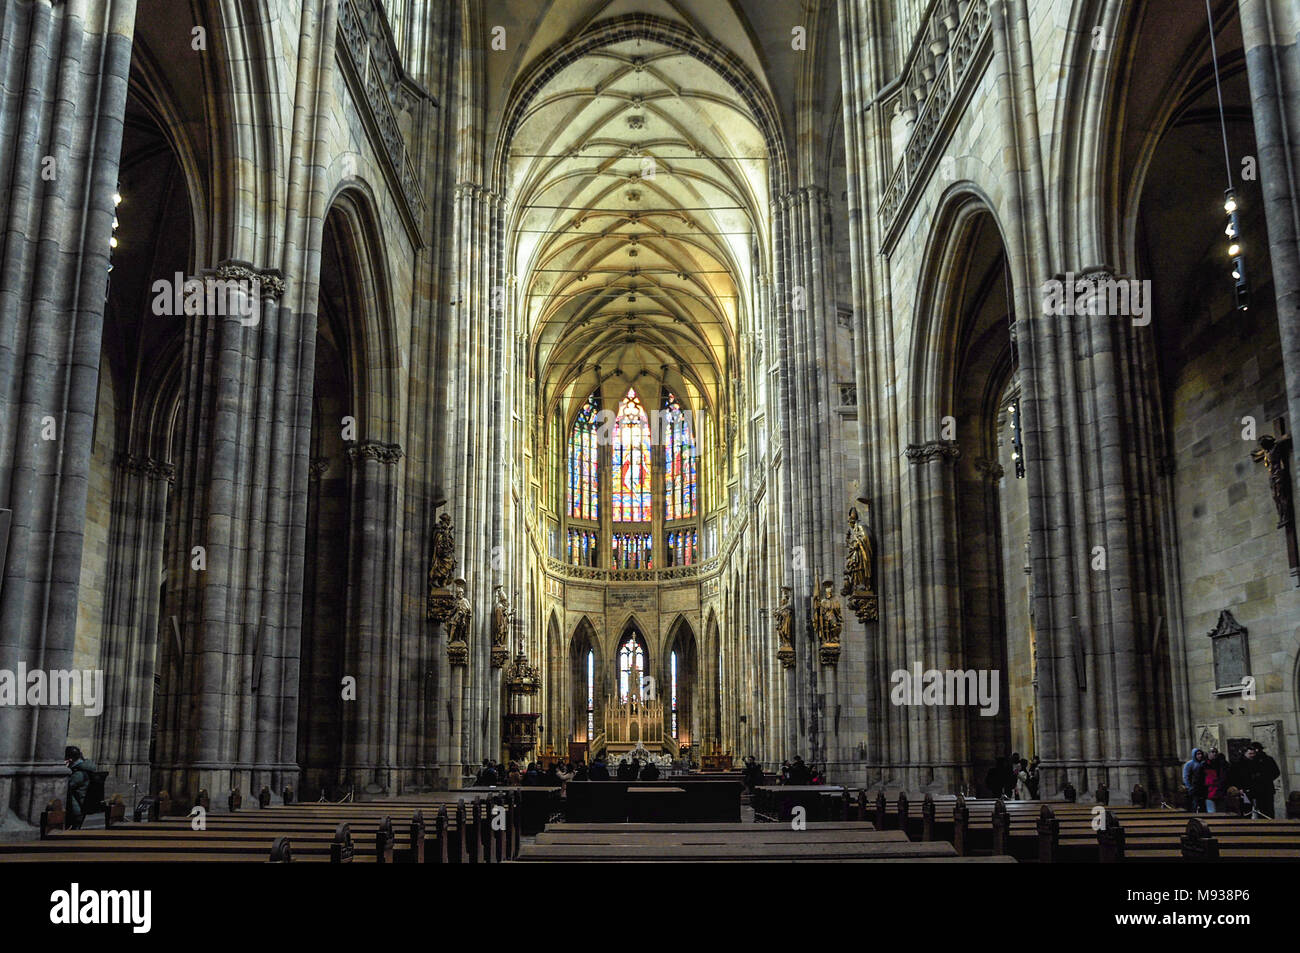 St. Vitus Cathedral, Prague Stock Photo